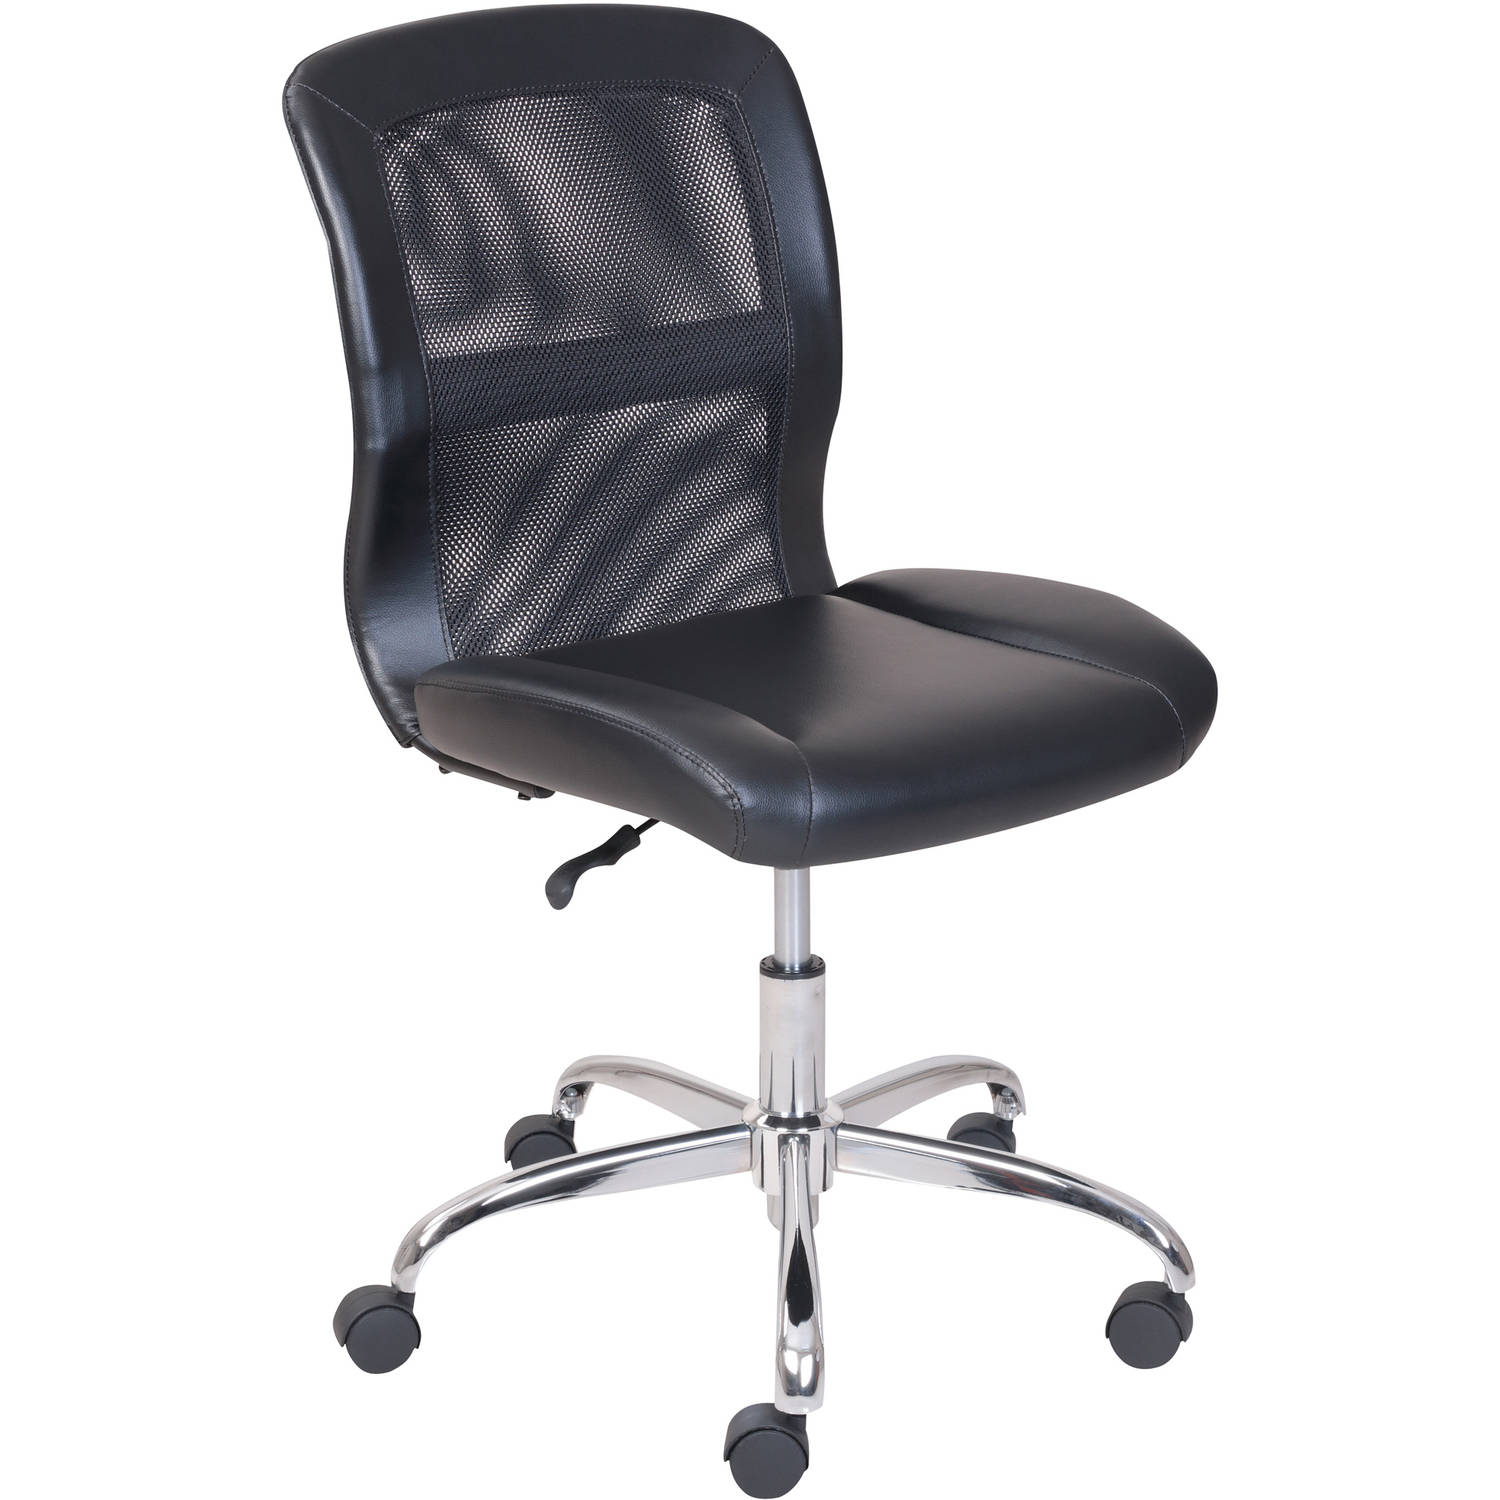 Merveilleux Mainstays Vinyl And Mesh Task Office Chair, Multiple Colors